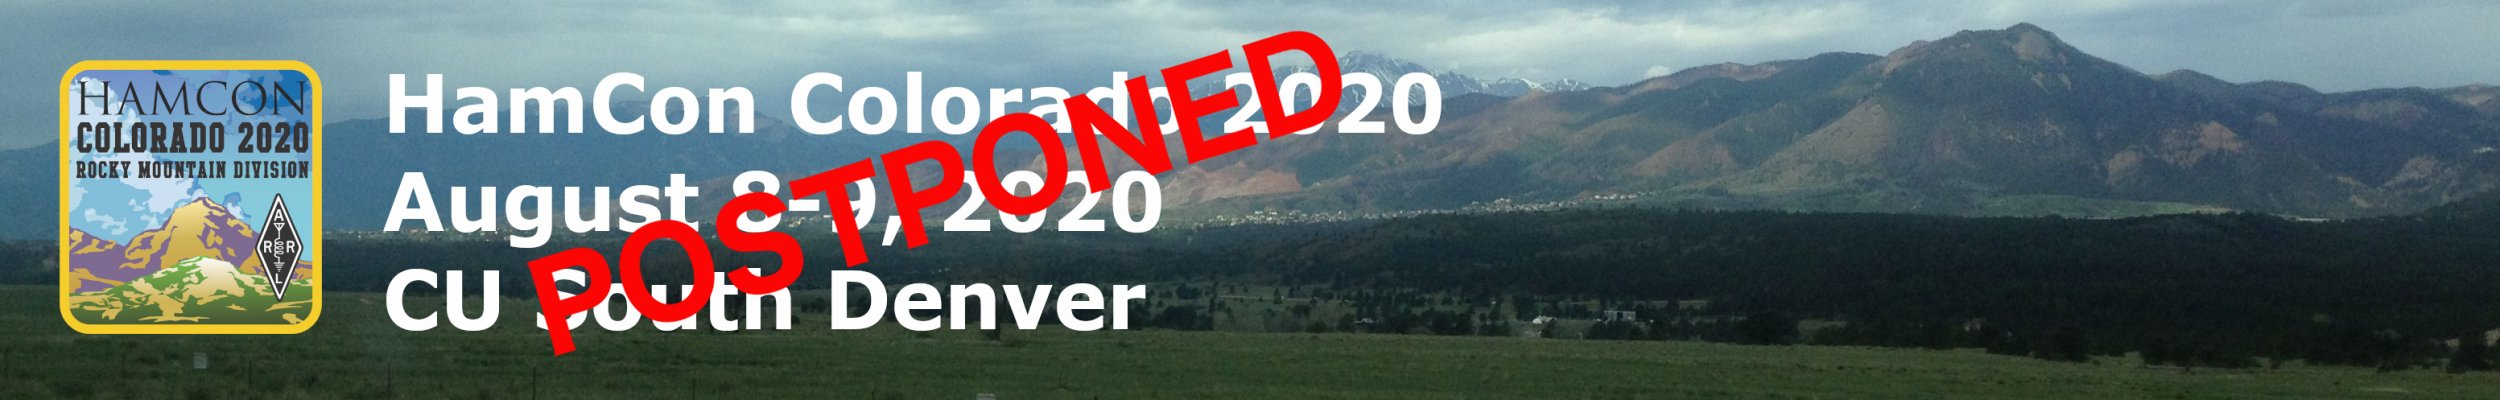 HamCon Colorado 2020